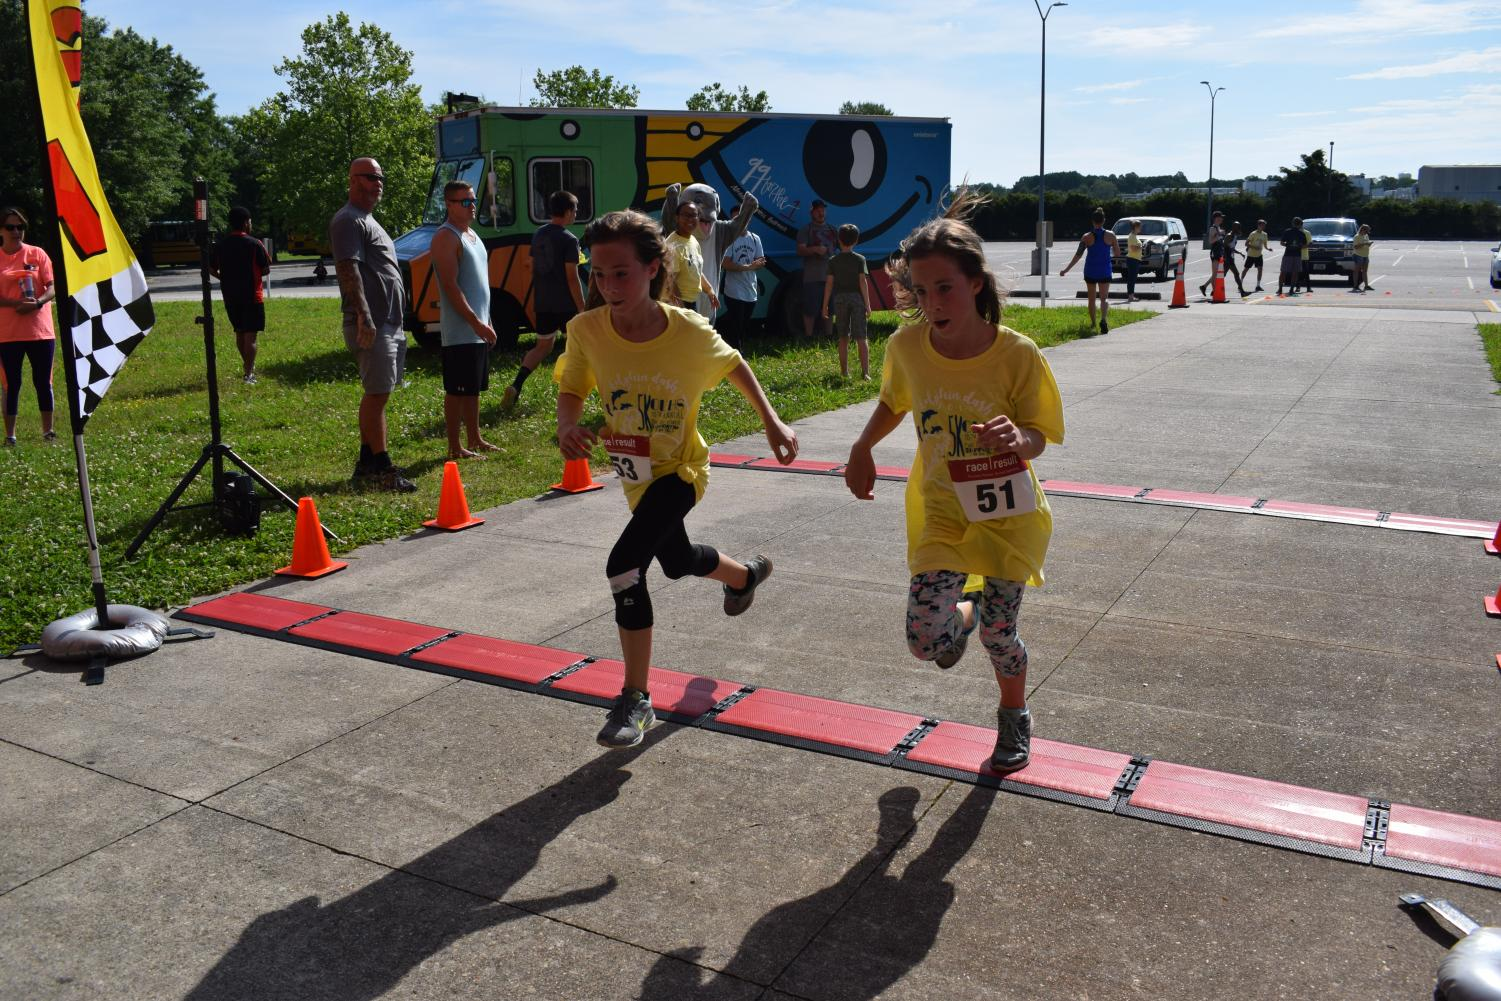 English teacher Jessica Scheible's twin daughters, Lucy and Brianna, cross the finish line and head to gym for after race festivities.